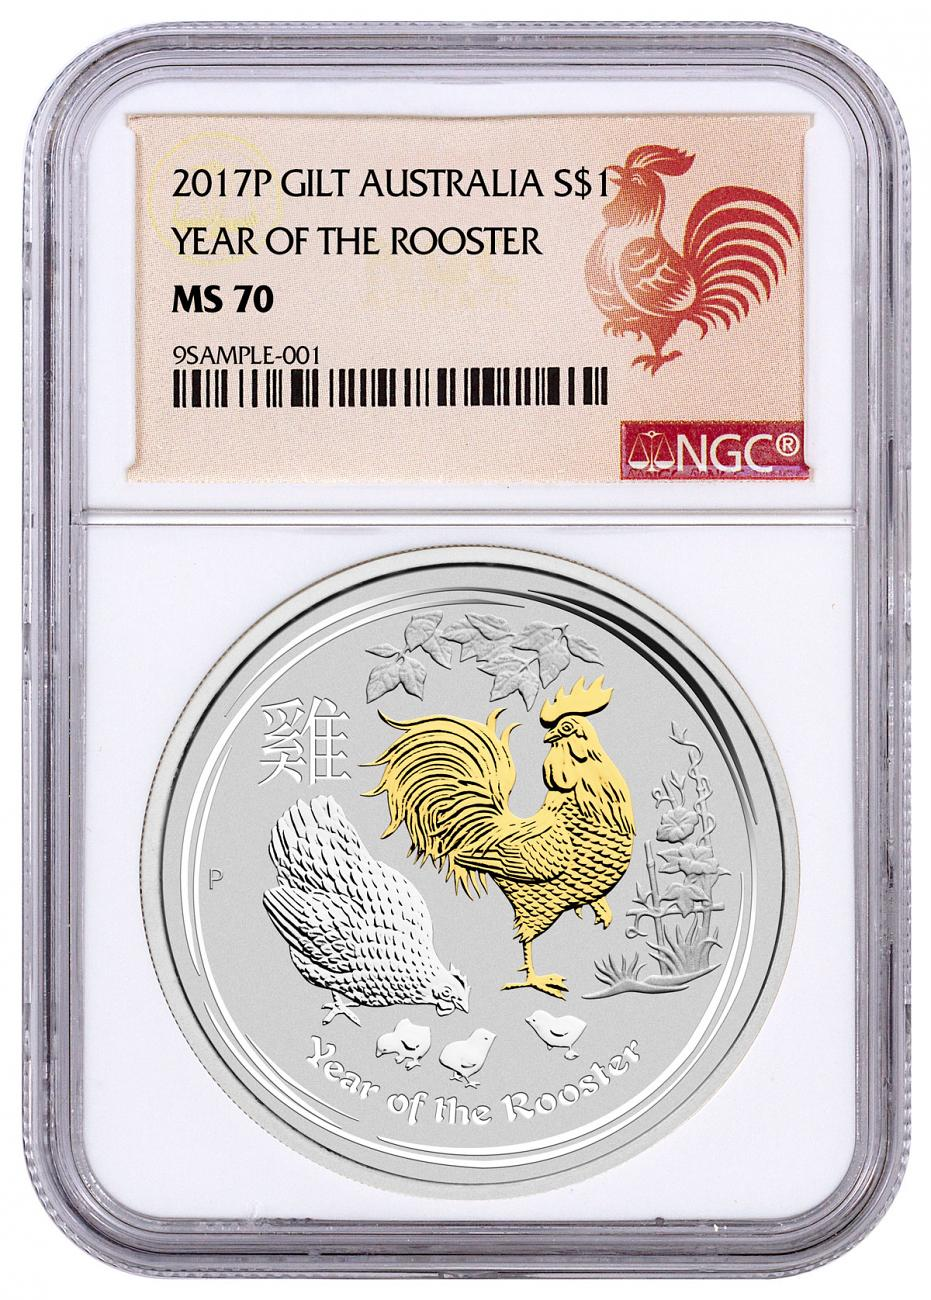 2017 Australia Year of the Rooster 1 oz Silver Lunar (Series 2) Gilt Proof $1 Coin NGC MS70 Rooster Label